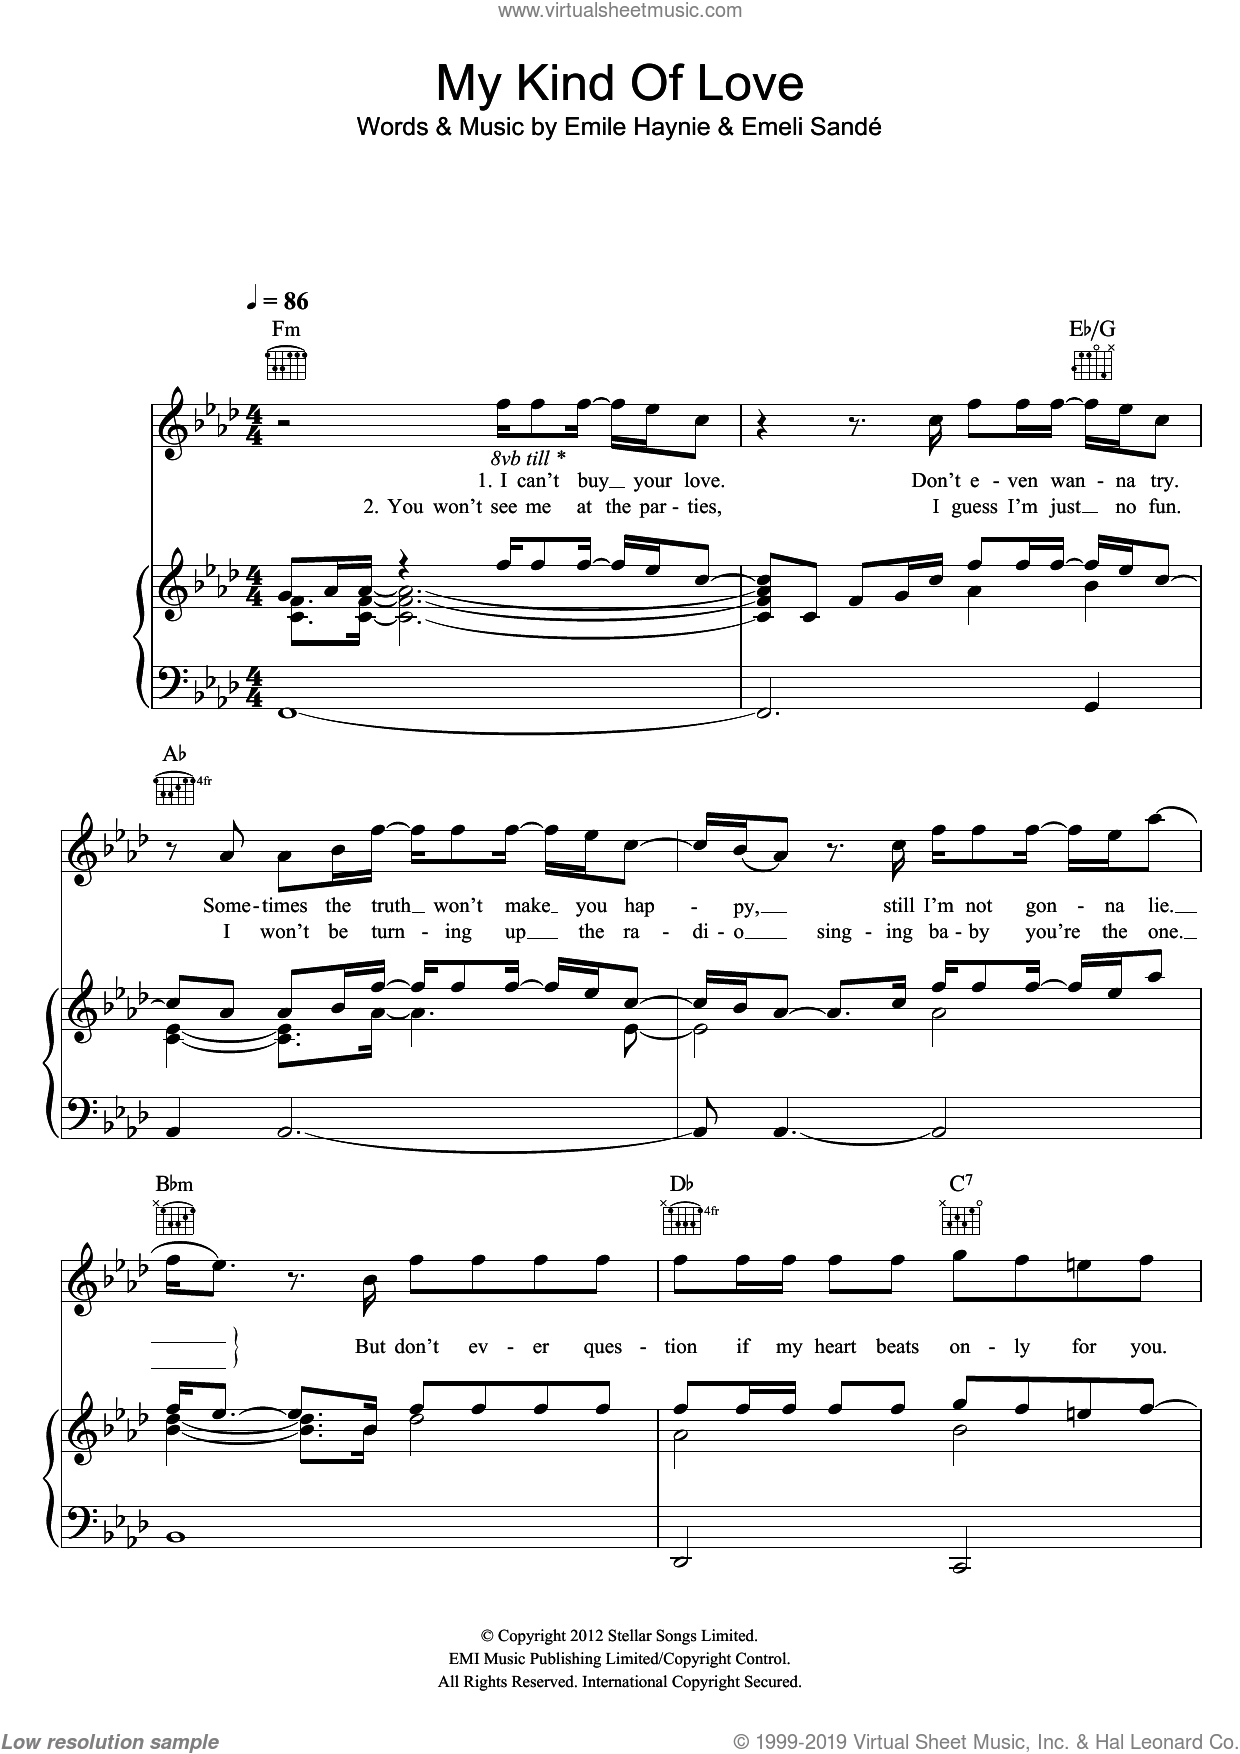 My Kind Of Love sheet music for voice, piano or guitar by Emeli Sande and Emile Haynie, intermediate skill level